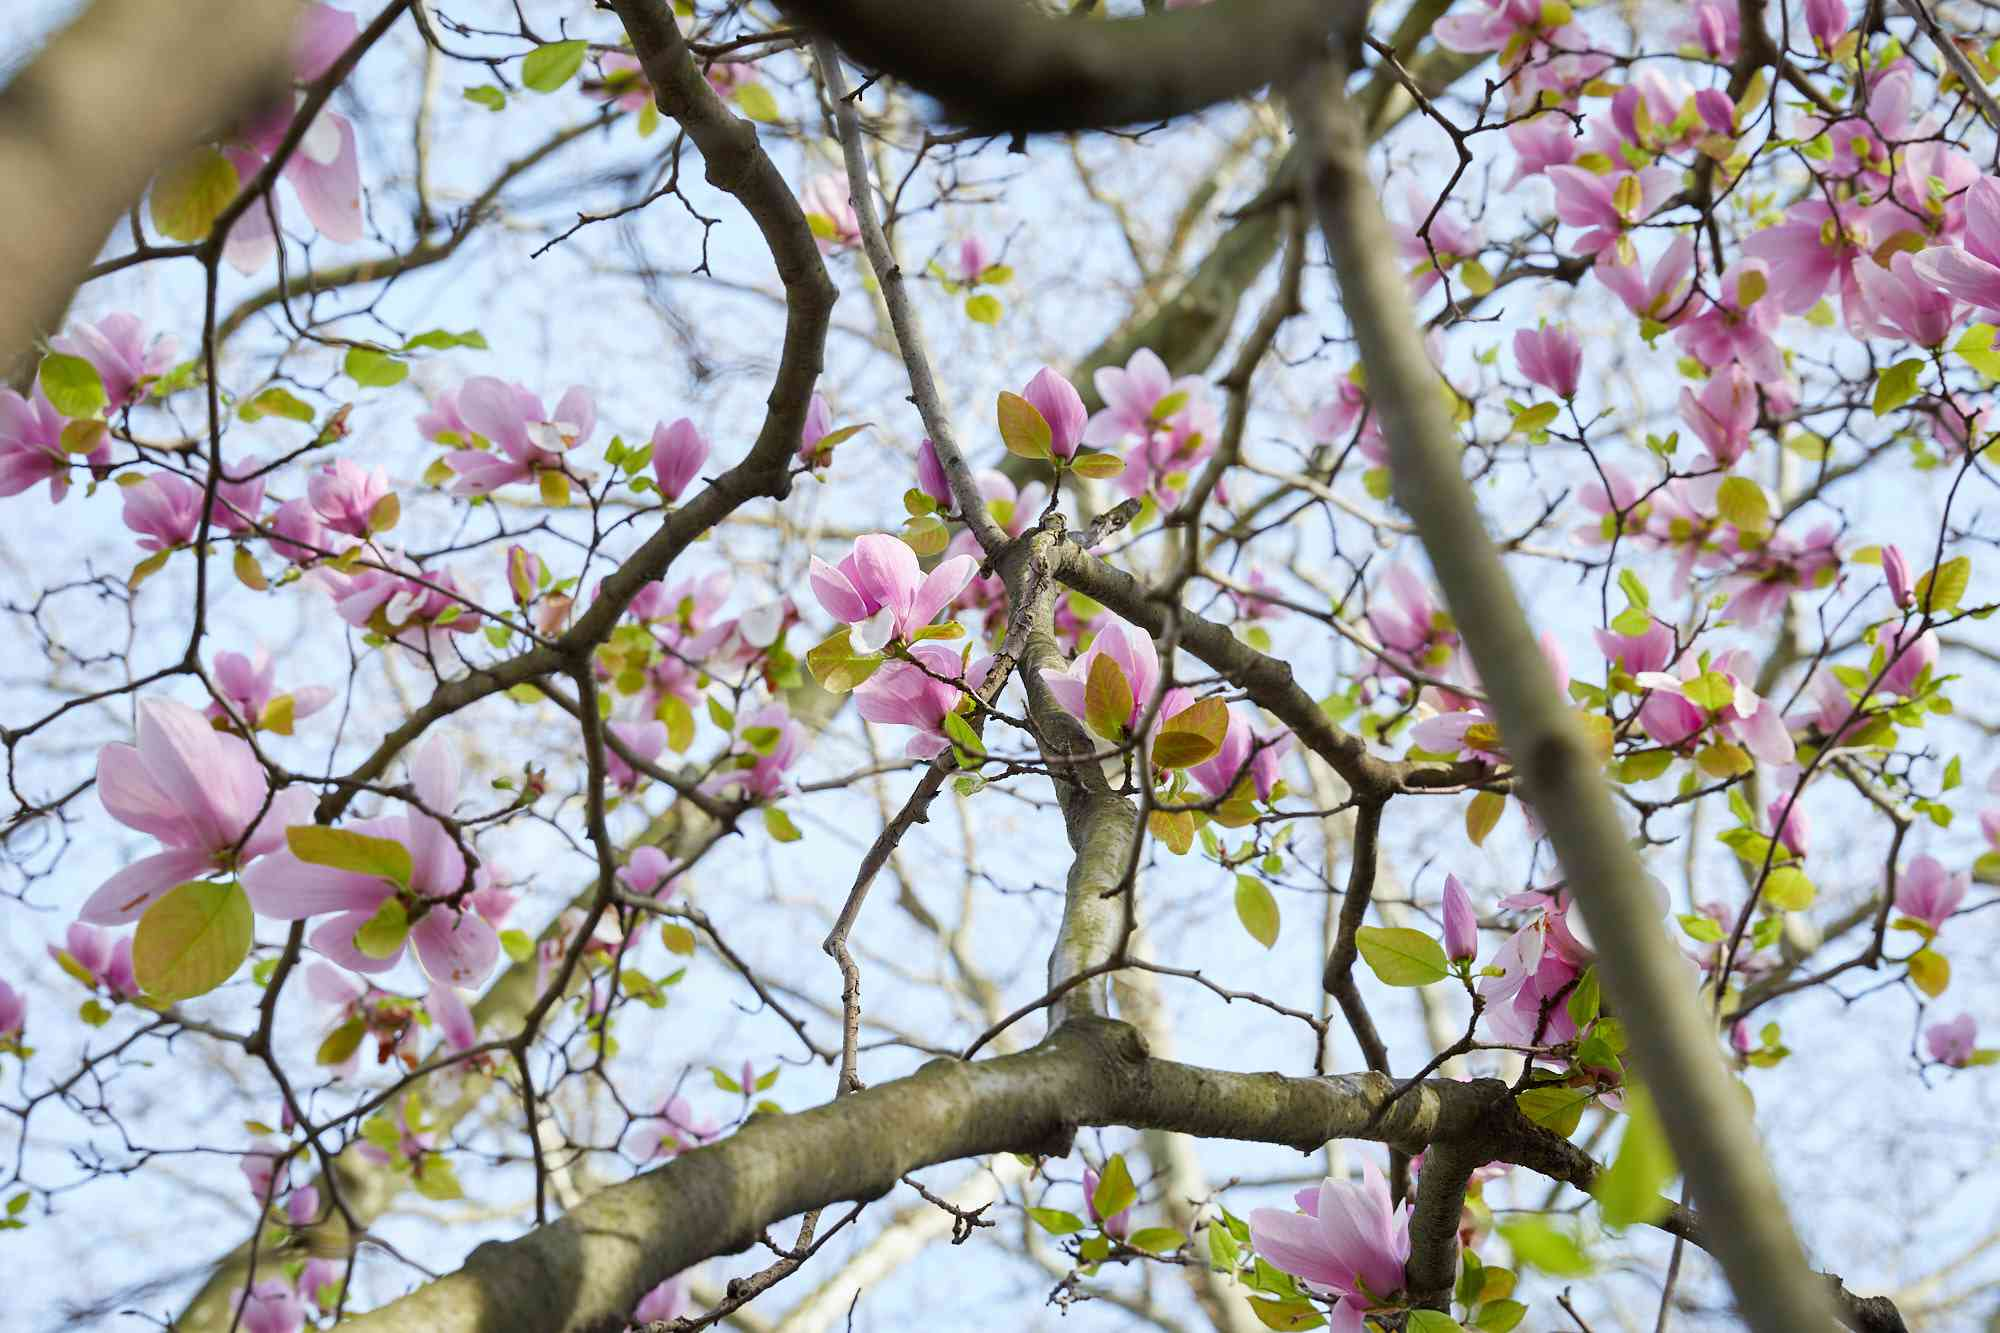 saucer magnolia tree from below